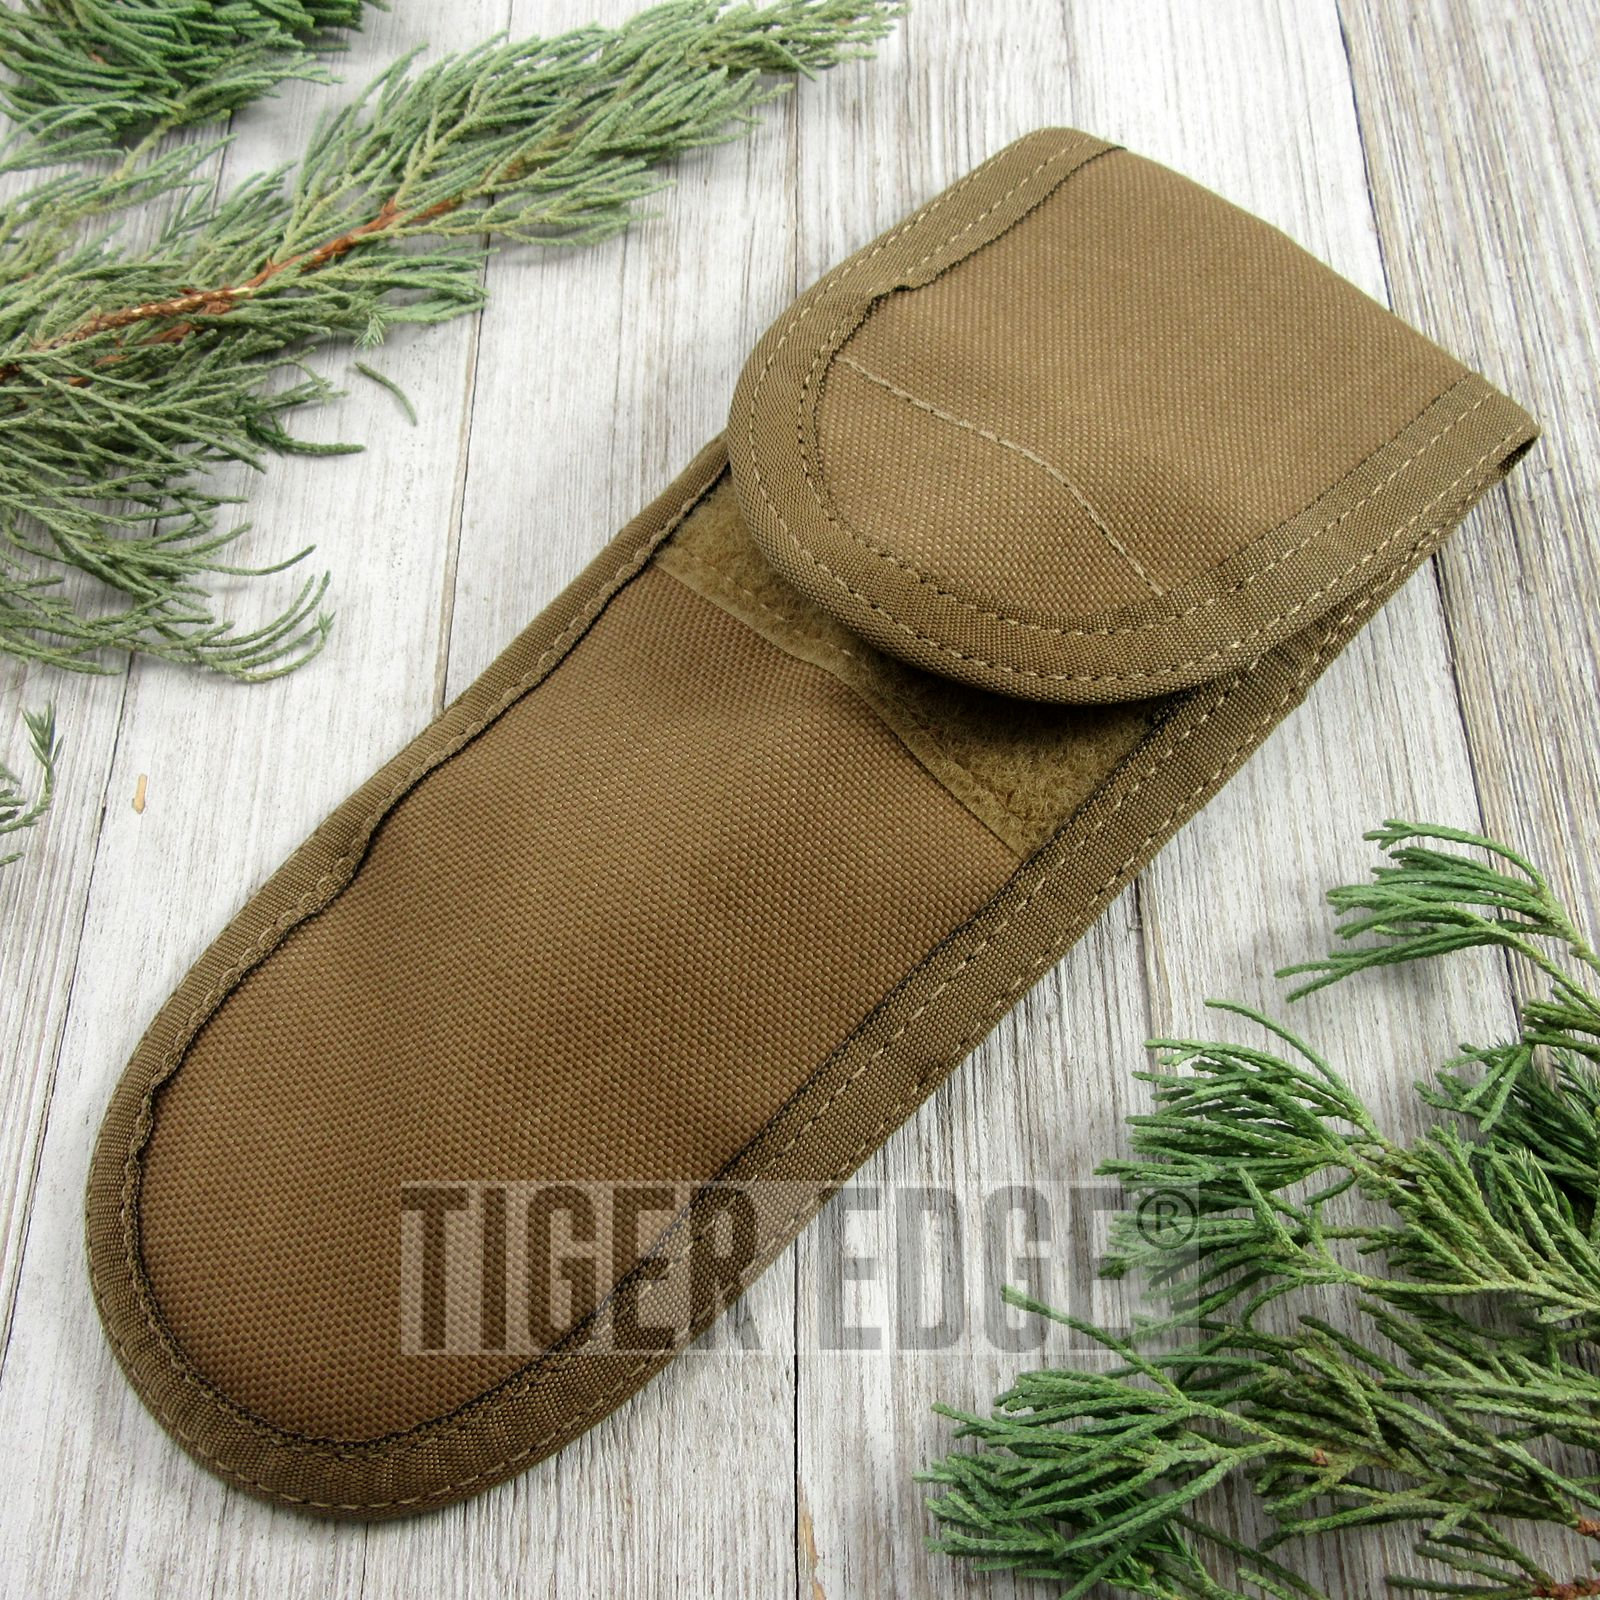 Folding Knife Sheath   Gerber Tactical Combat Tan Case Pouch - Fits Up To 8